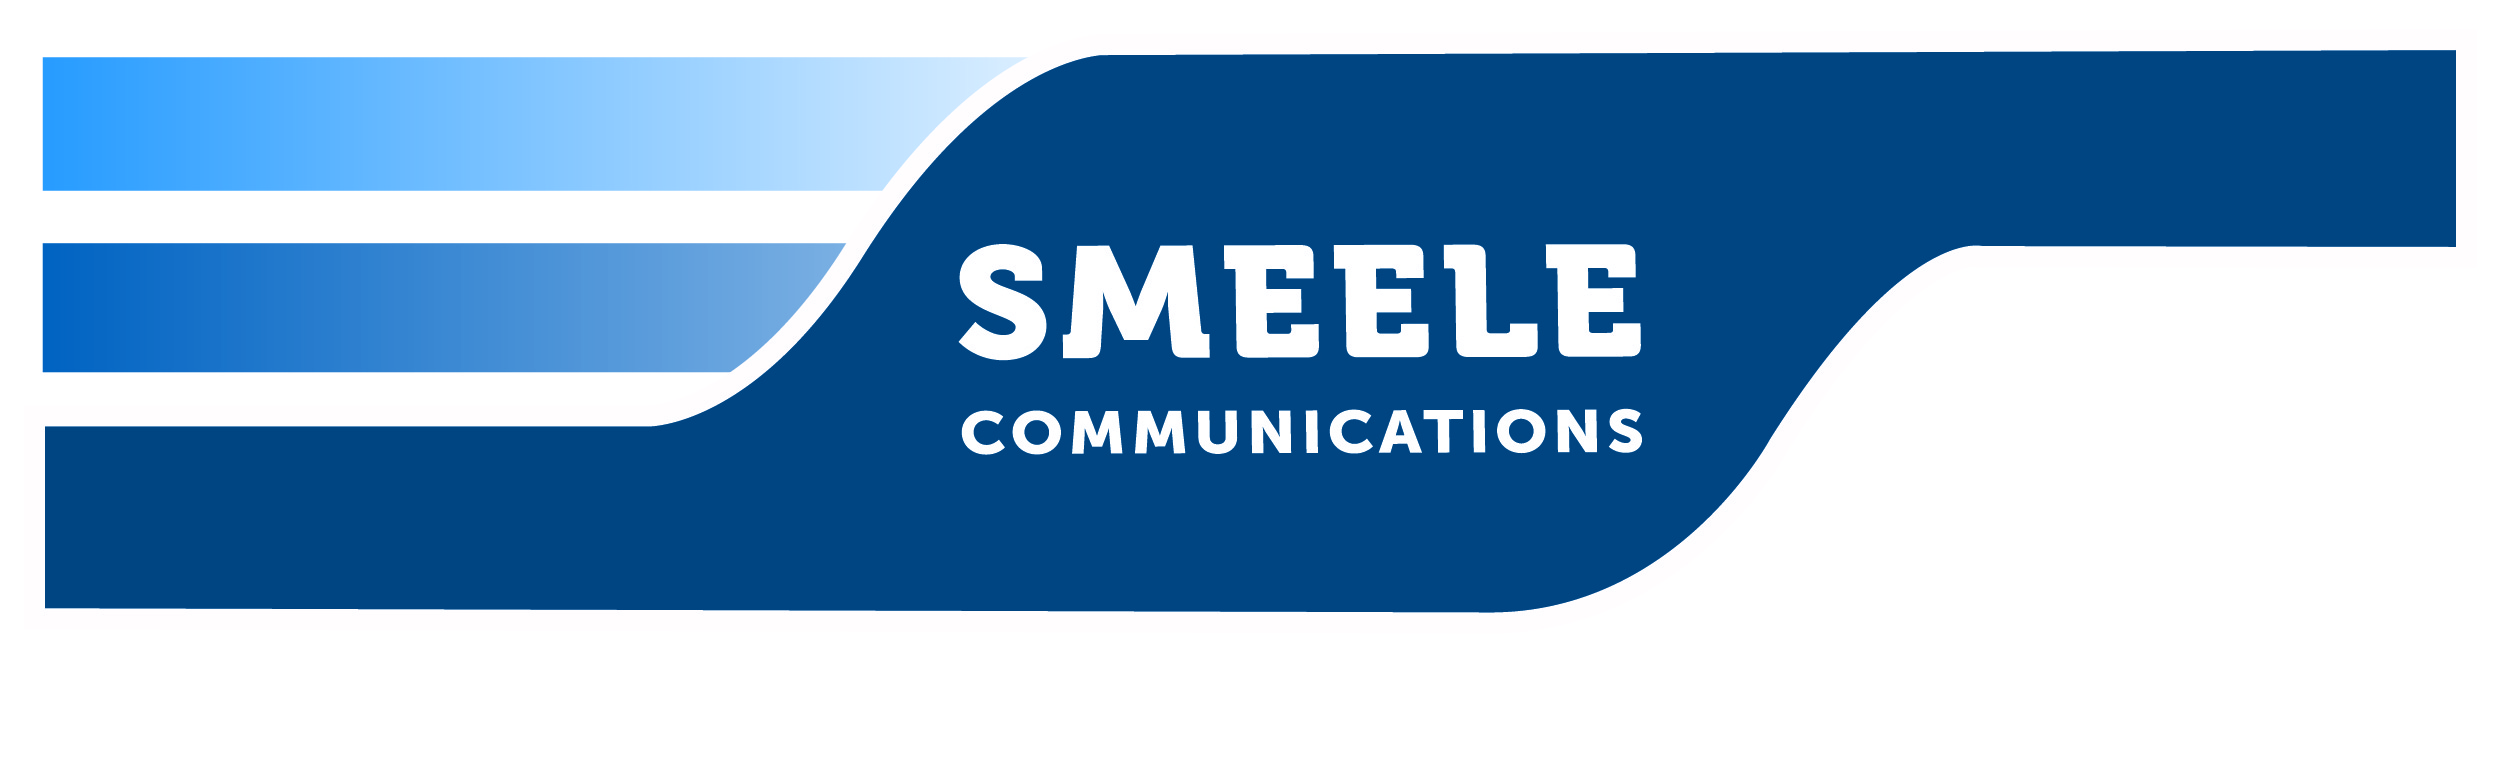 Smeele Communications…